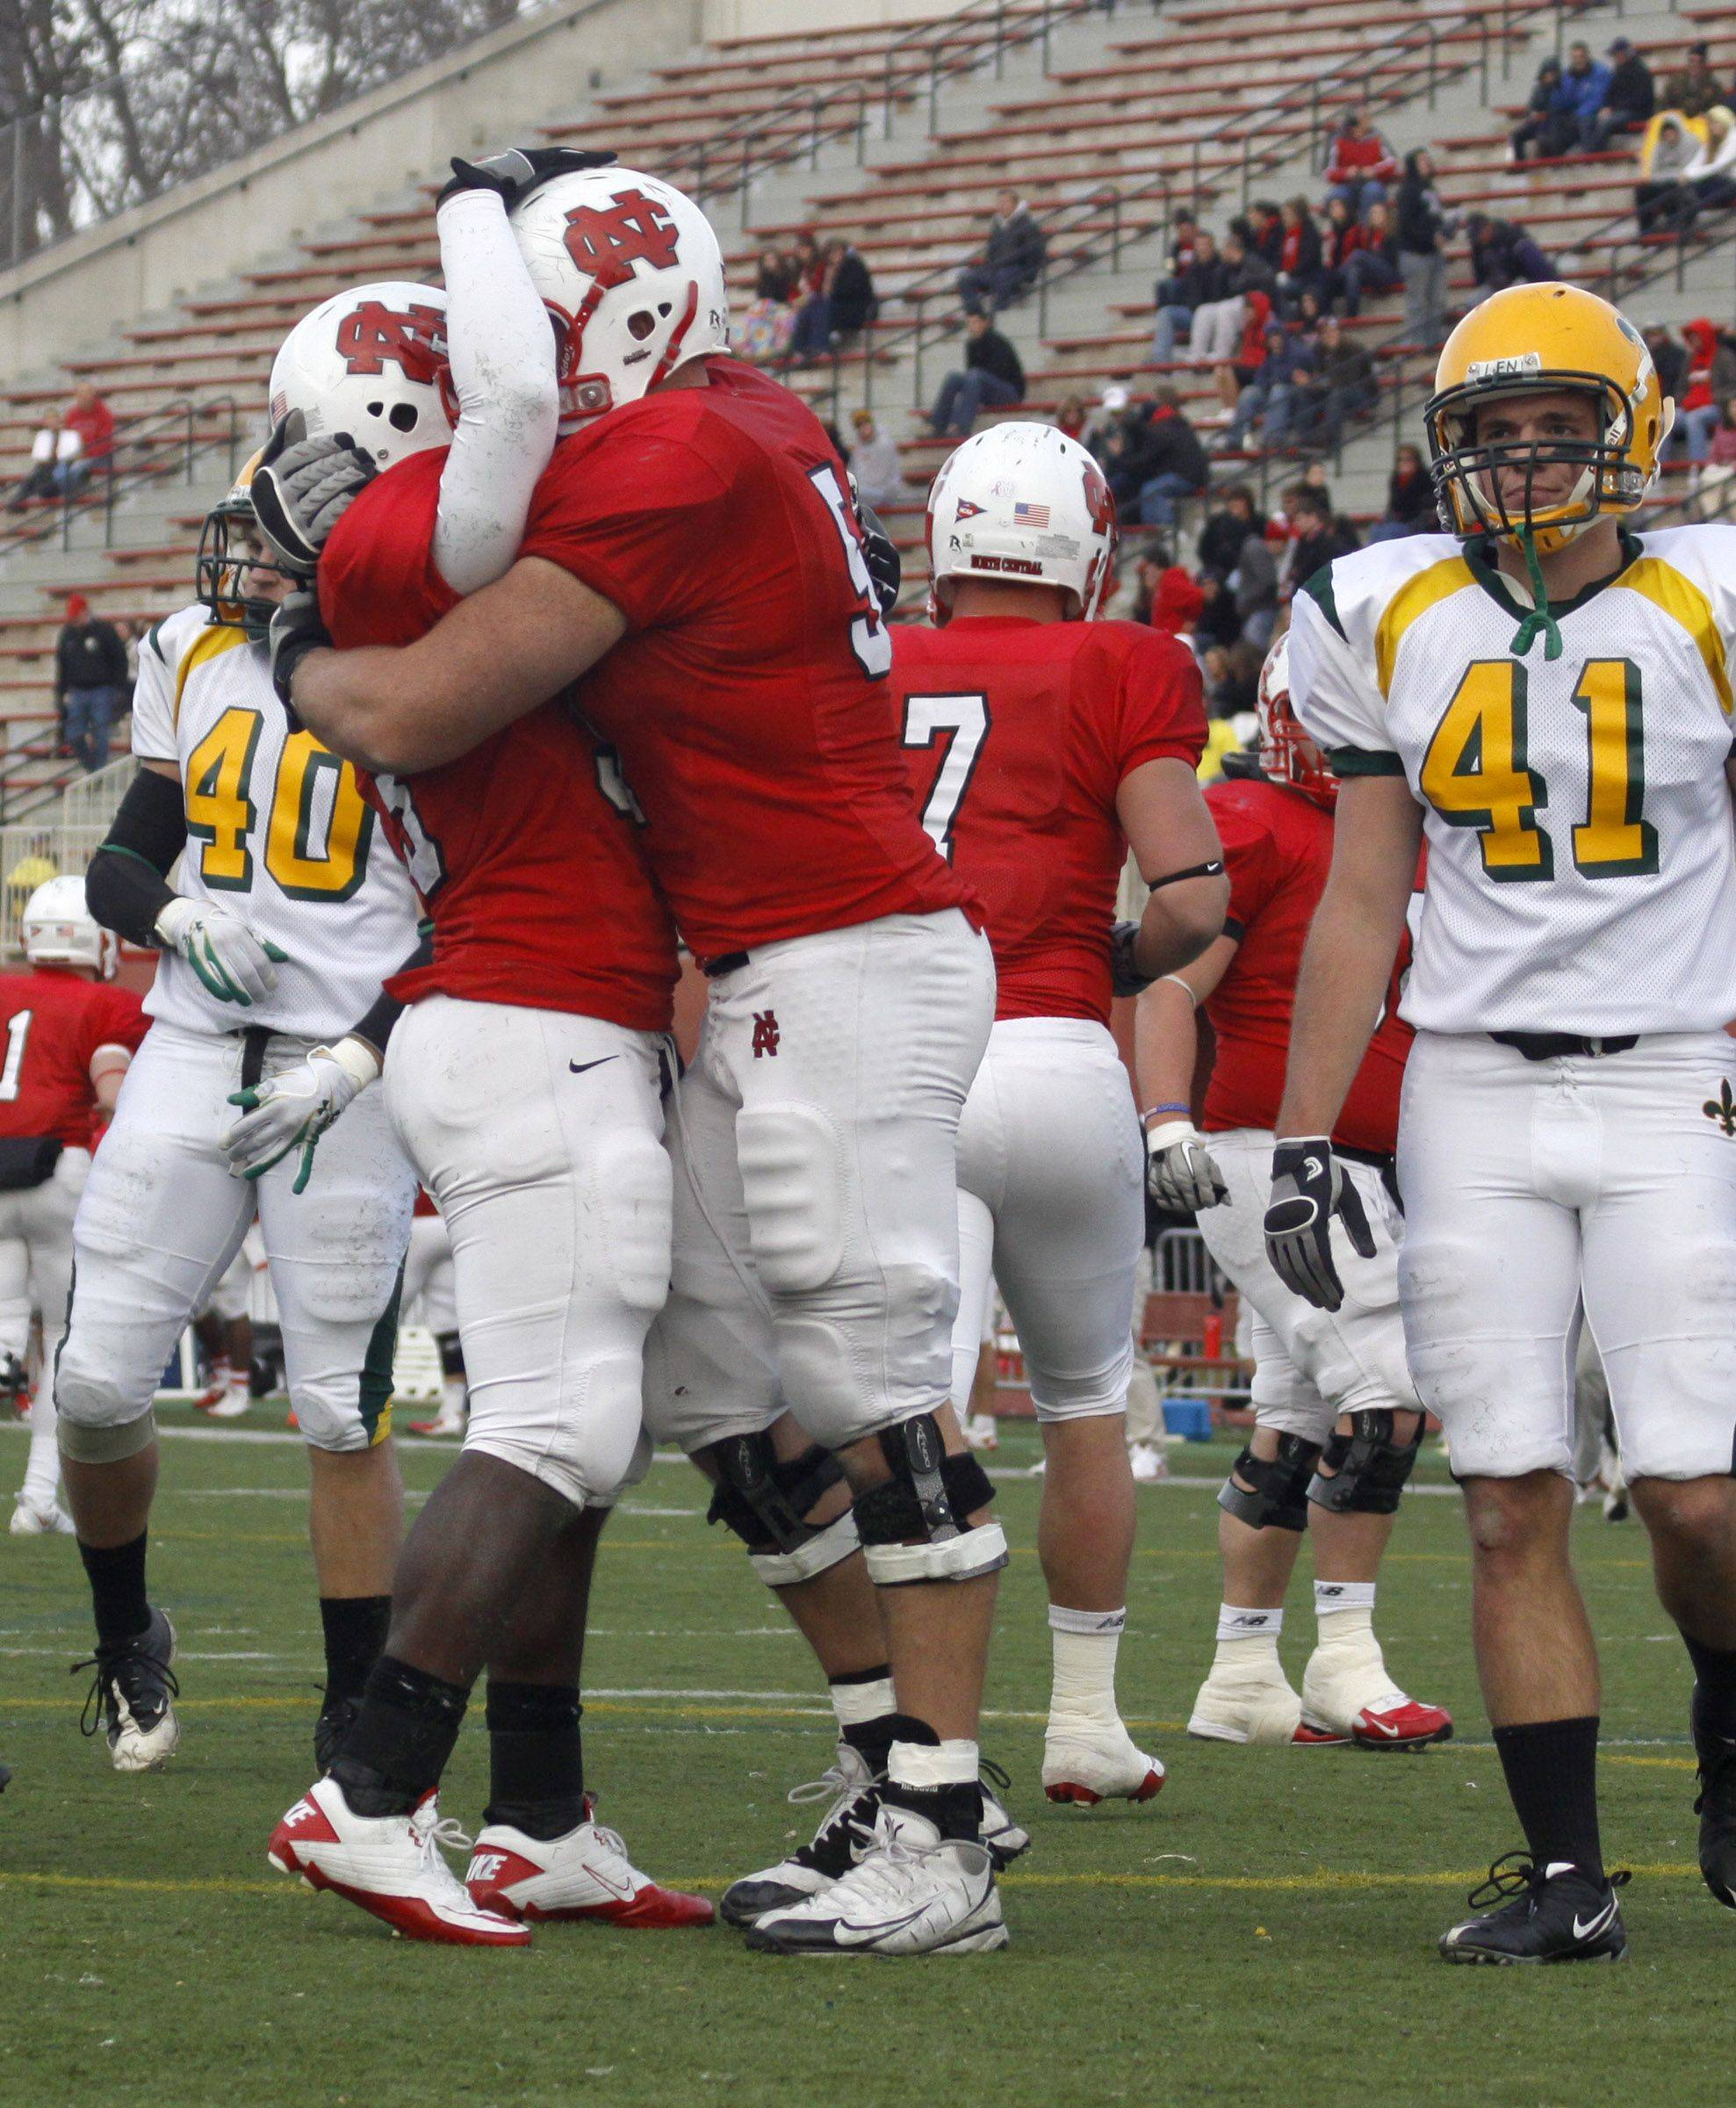 North Central College players Denzel Thompson, 33, and Will Thurn, 57, celebrate after Thompson scored a touchdown at Saturday's playoff football game against St. Norbert. North Central College went on to win 57 to 7.